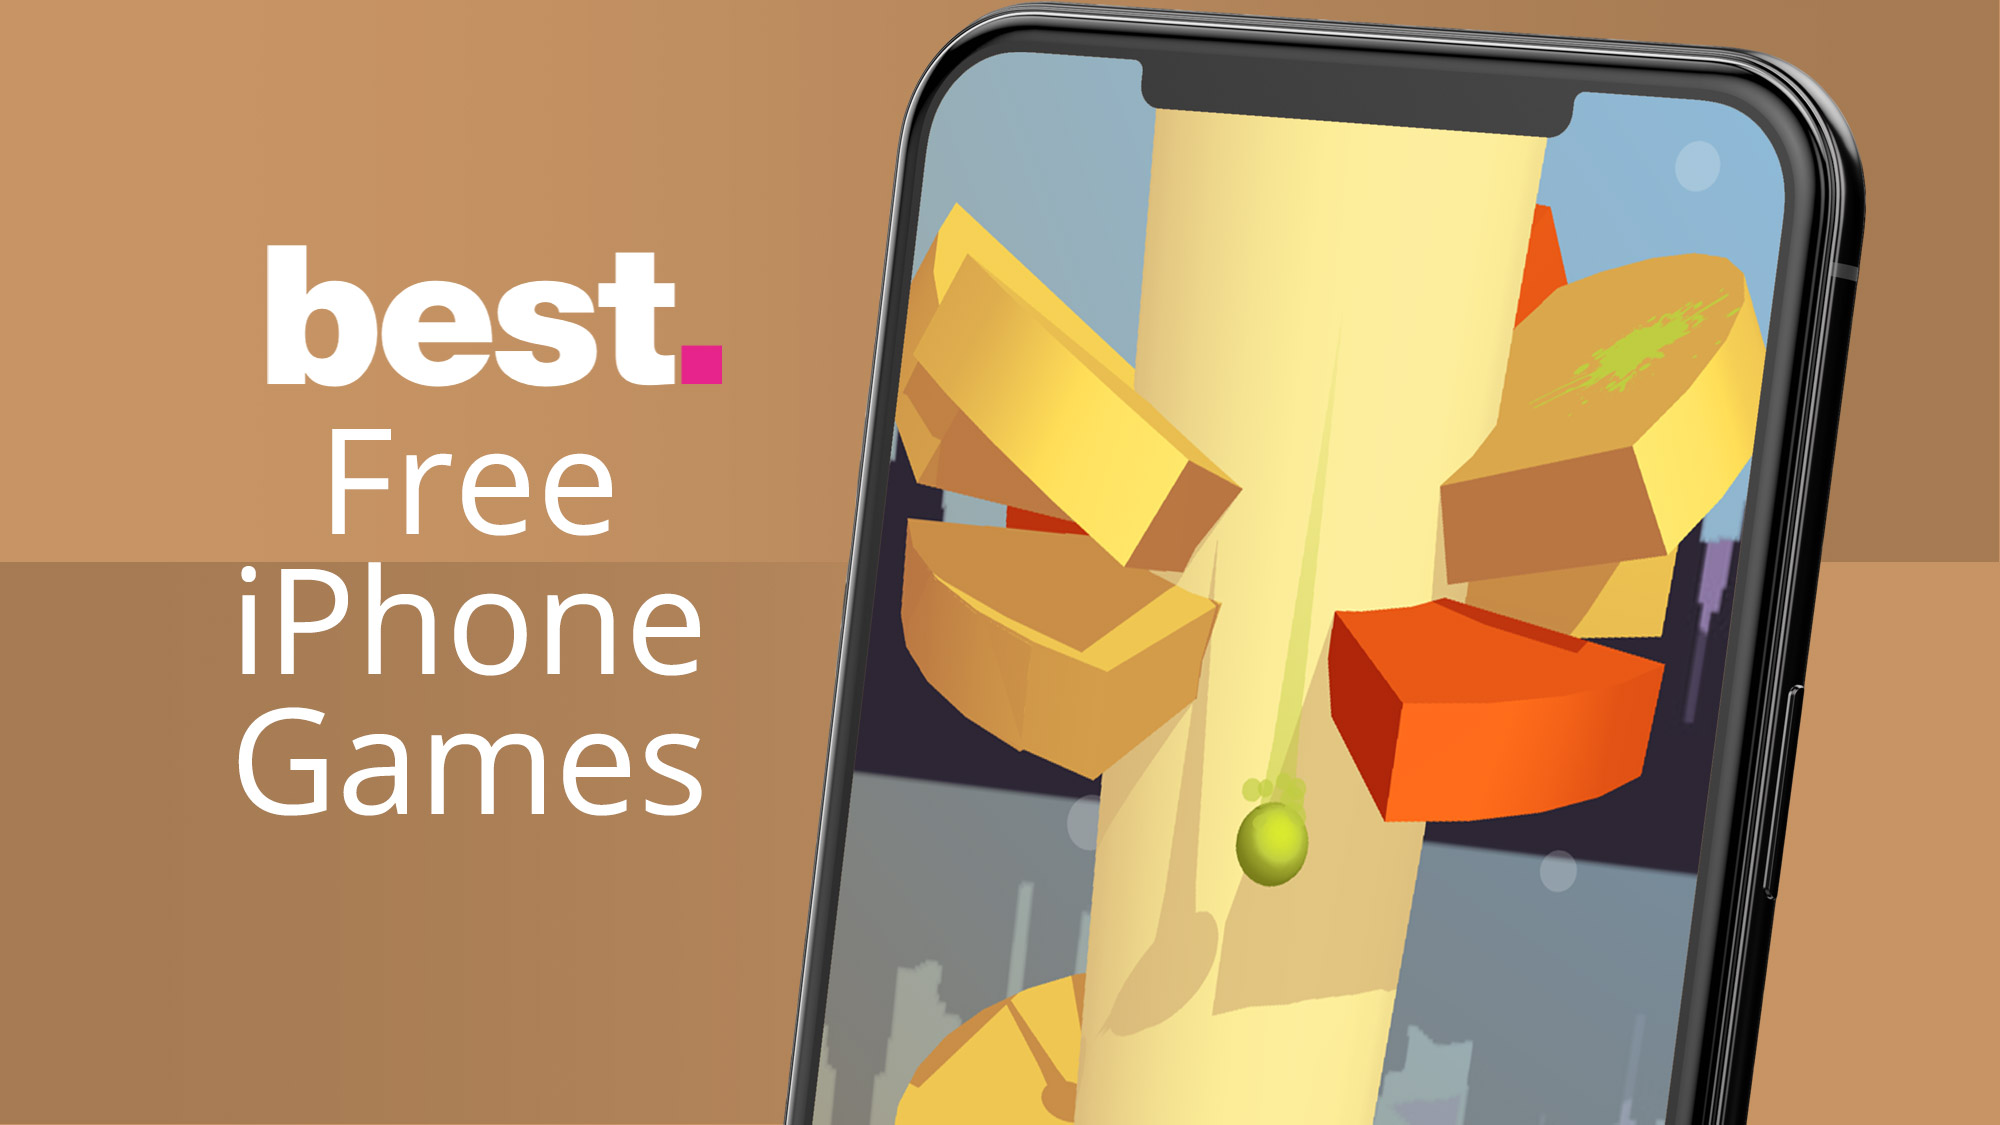 apple iphone 4s games free download